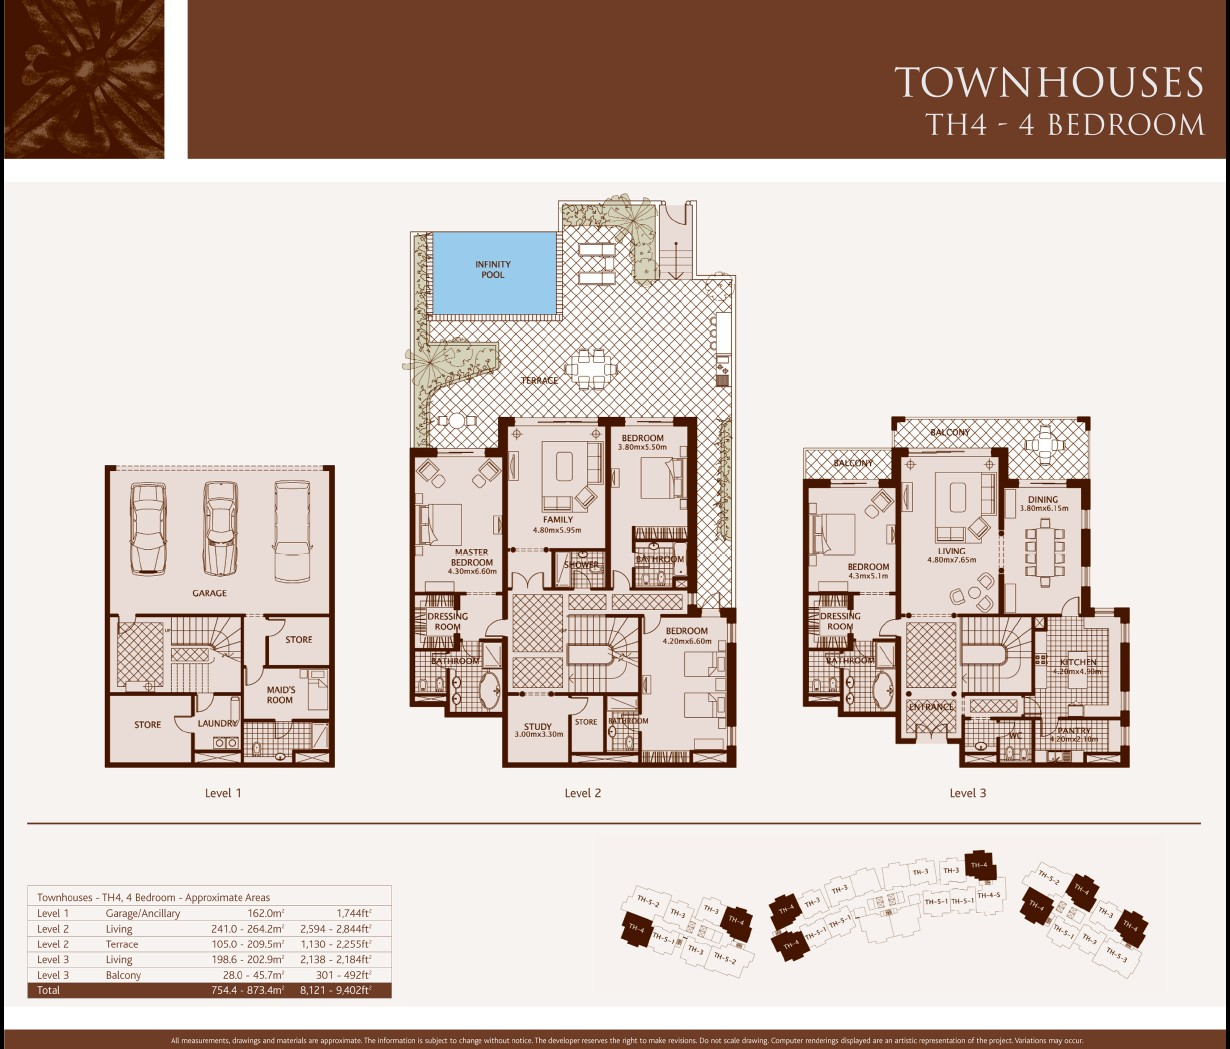 townhouse floor plans townhouse floor plans lcxzzcom townhouse floor plans garage plan house. Black Bedroom Furniture Sets. Home Design Ideas